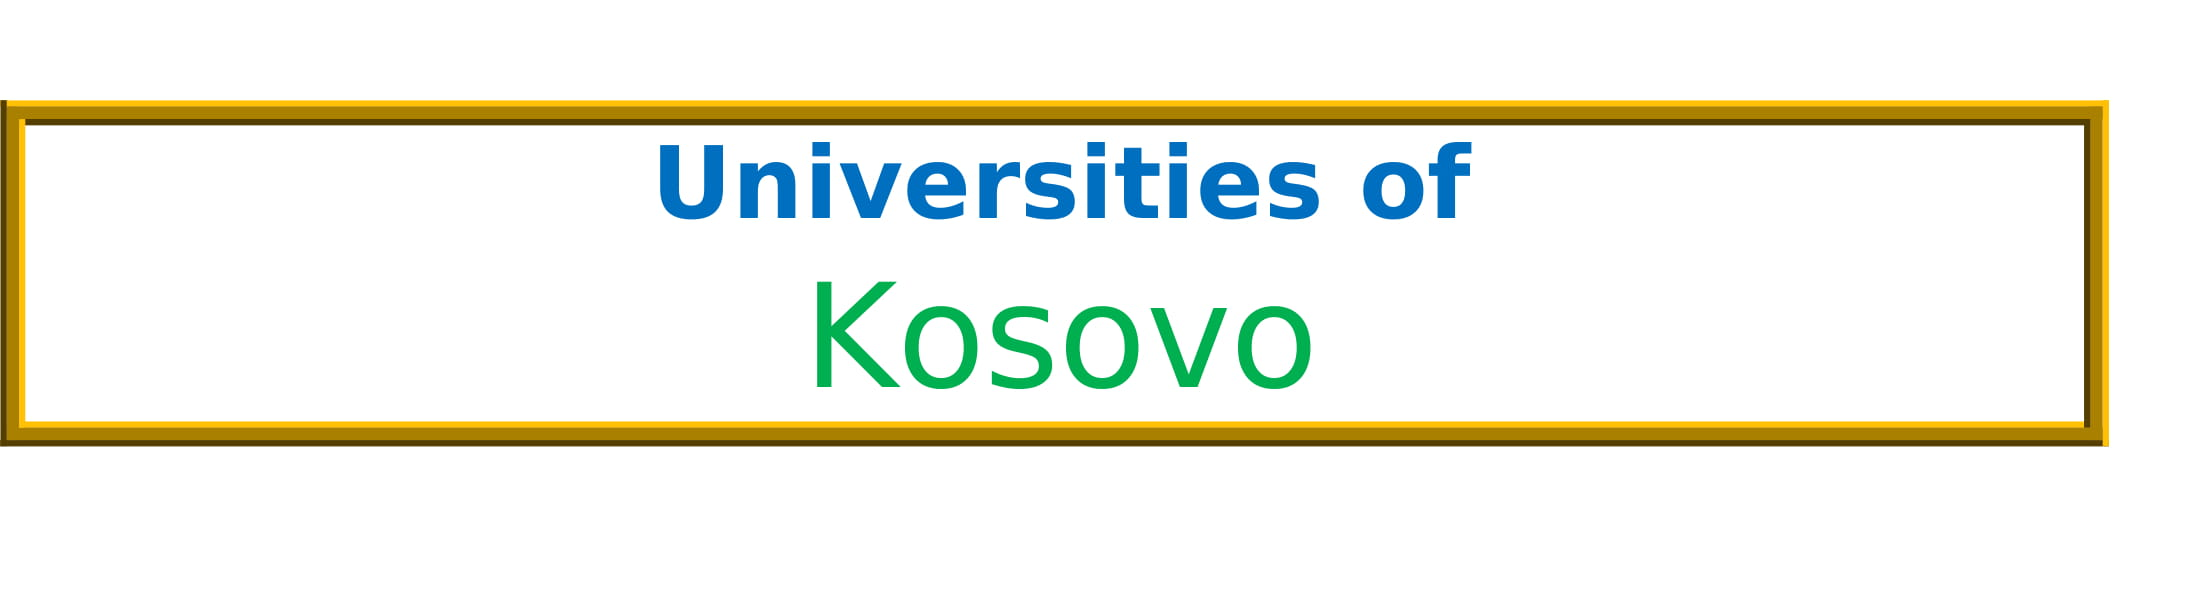 List of Universities in Kosovo